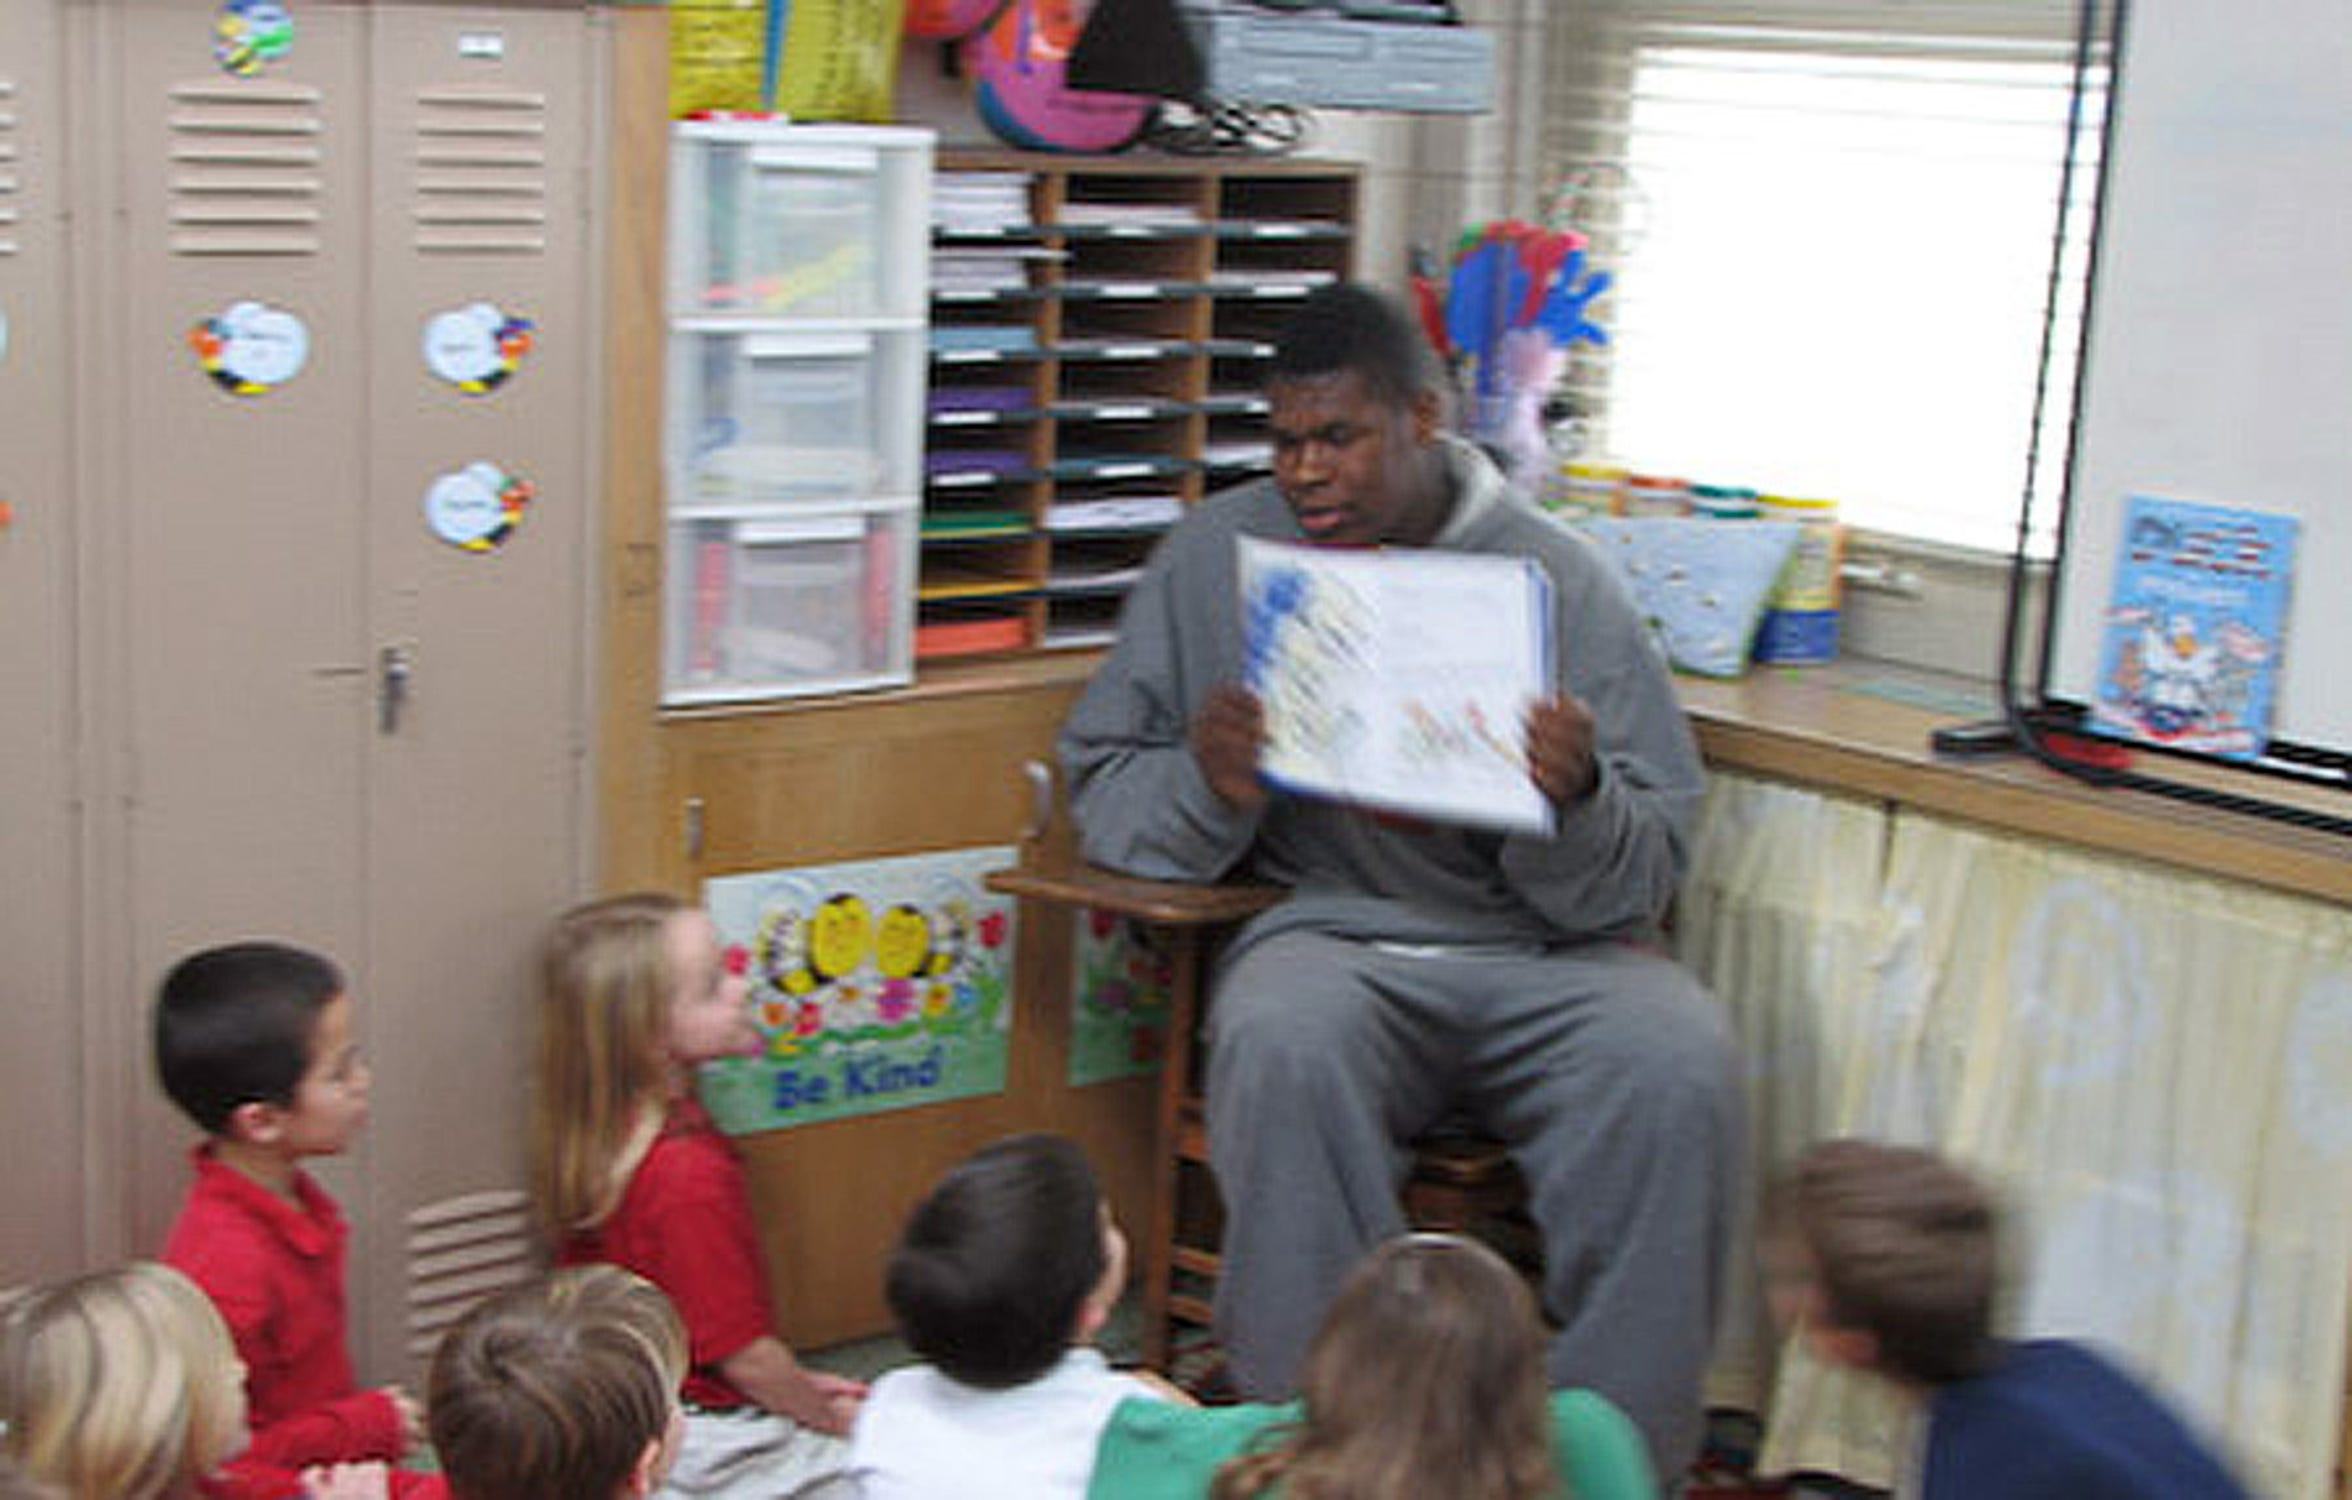 Jeron Lewis reads to a group of kids during an after-school program at Resurrection Elementary School in 2009